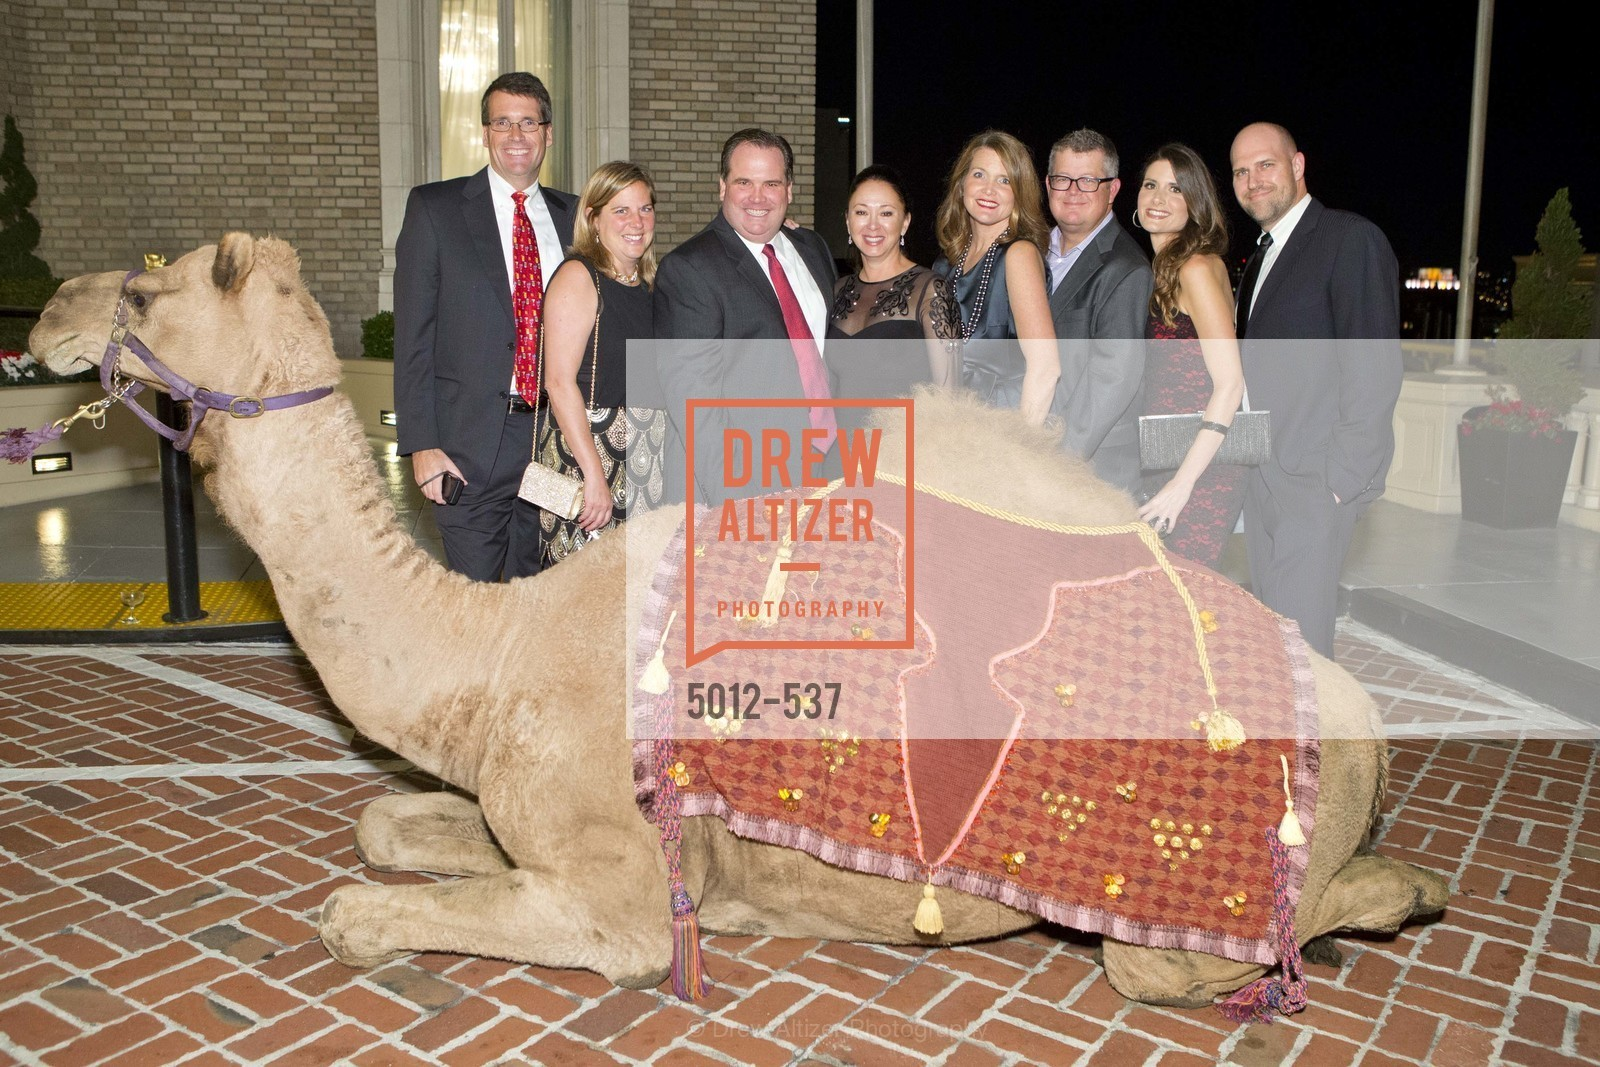 Paul Brady, Lisa Brady, John Brady, Meg Conrad, Charlie Conrad, Monica Gookins, Erik Gookins, TOP OF THE MARK'S 75TH Anniversary Party, US, November 7th, 2014,Drew Altizer, Drew Altizer Photography, full-service agency, private events, San Francisco photographer, photographer california